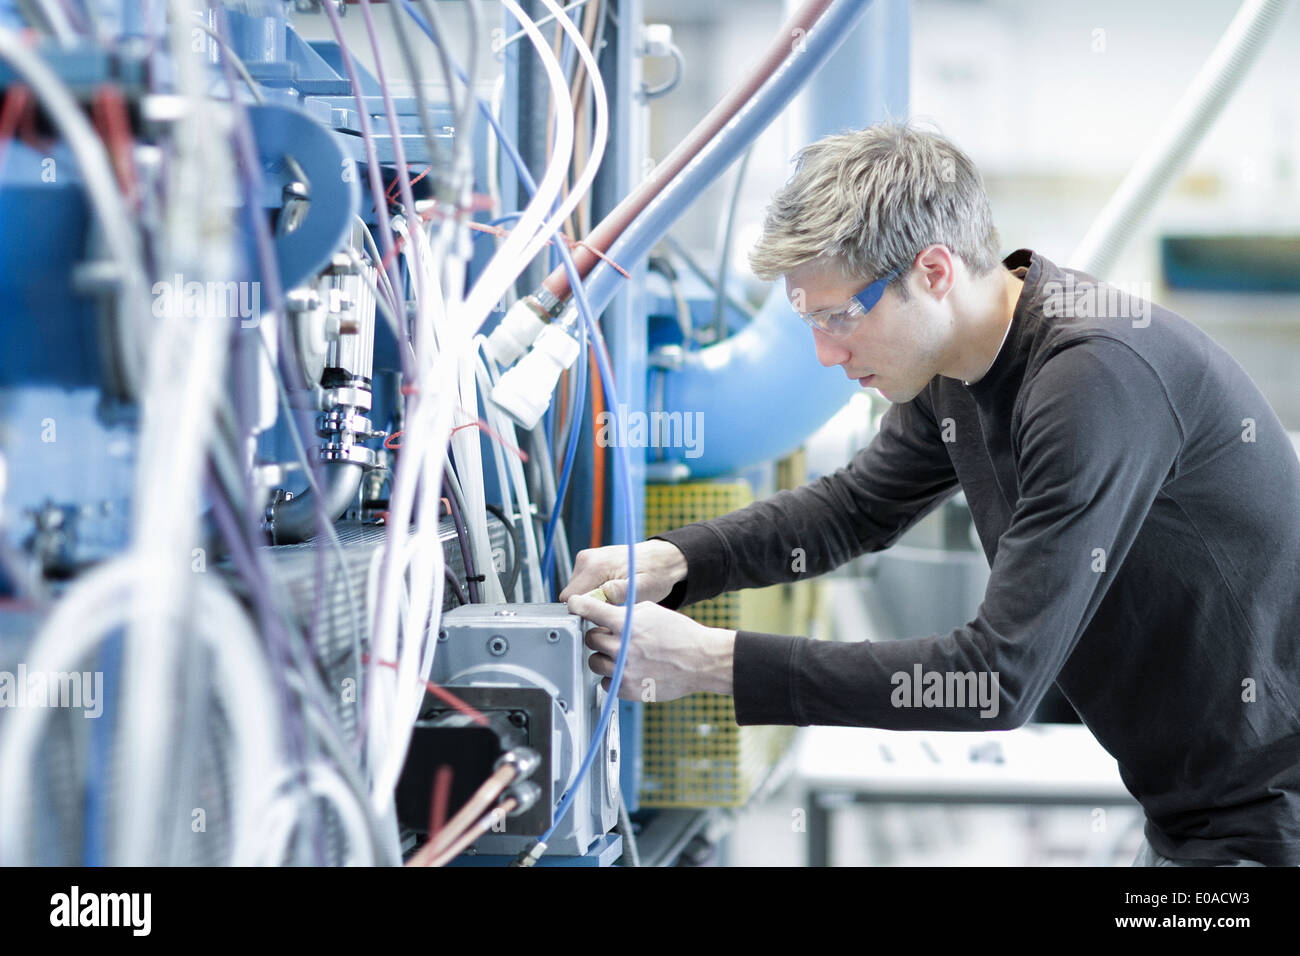 Mid adult male technician maintaining cables in engineering plant - Stock Image